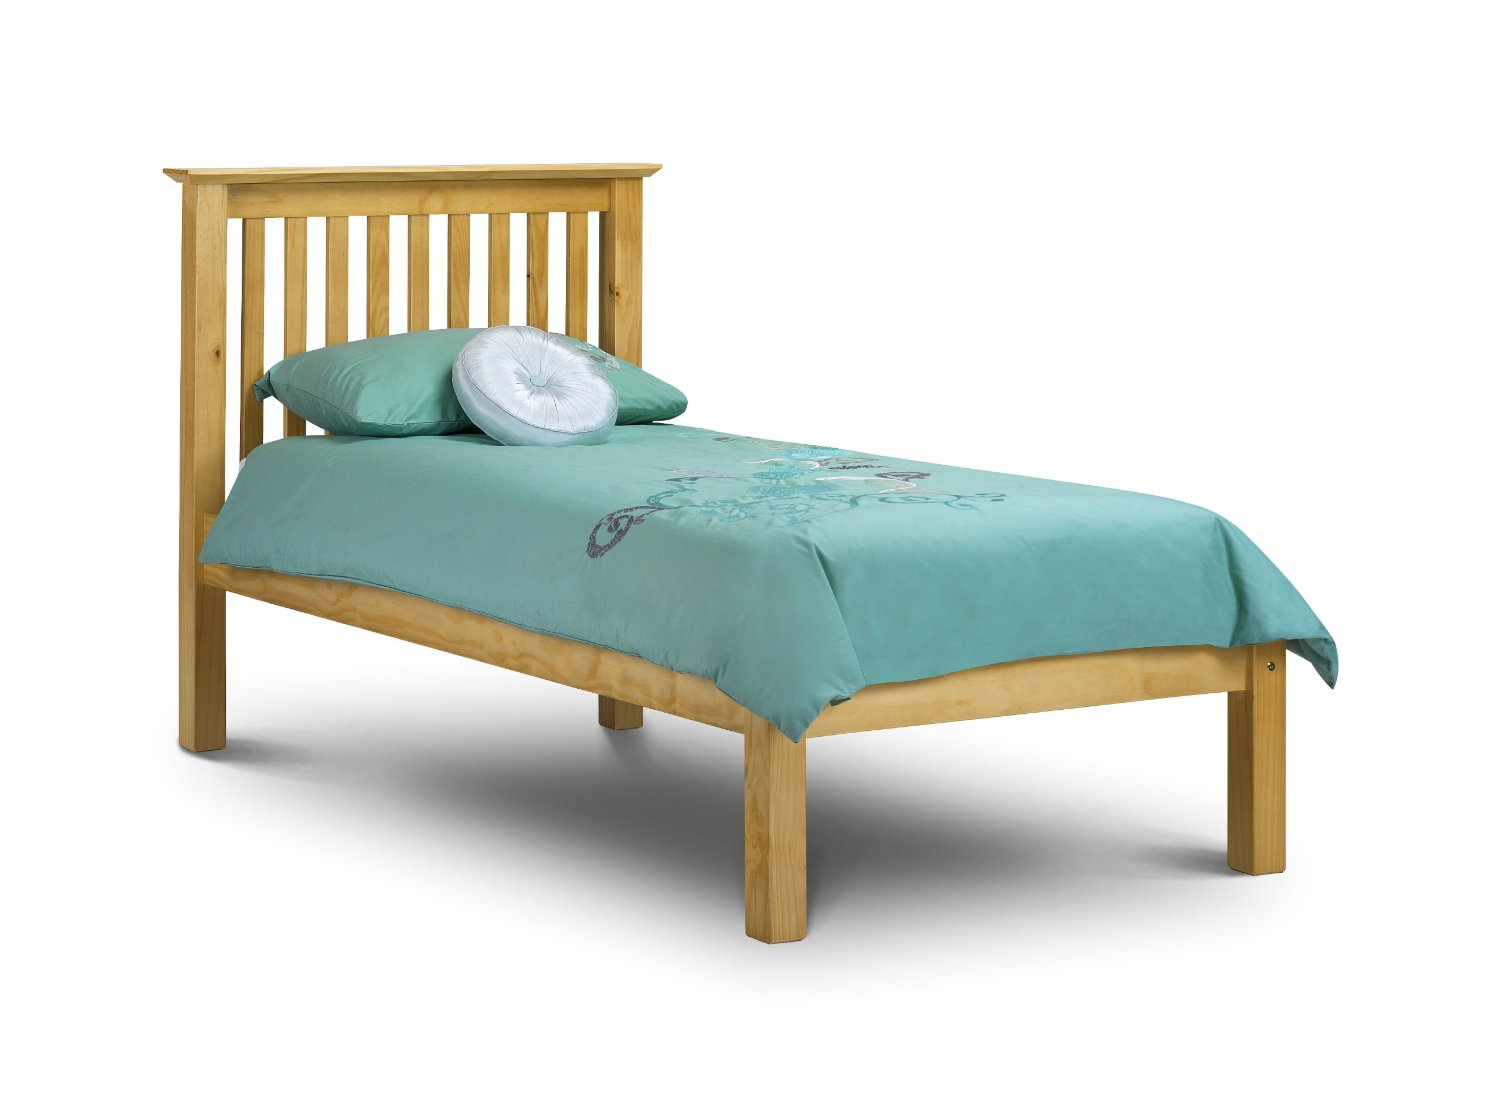 https://www.firstfurniture.co.uk/pub/media/catalog/product/7/1/71nbxpM5GBL._SL1500_.jpg